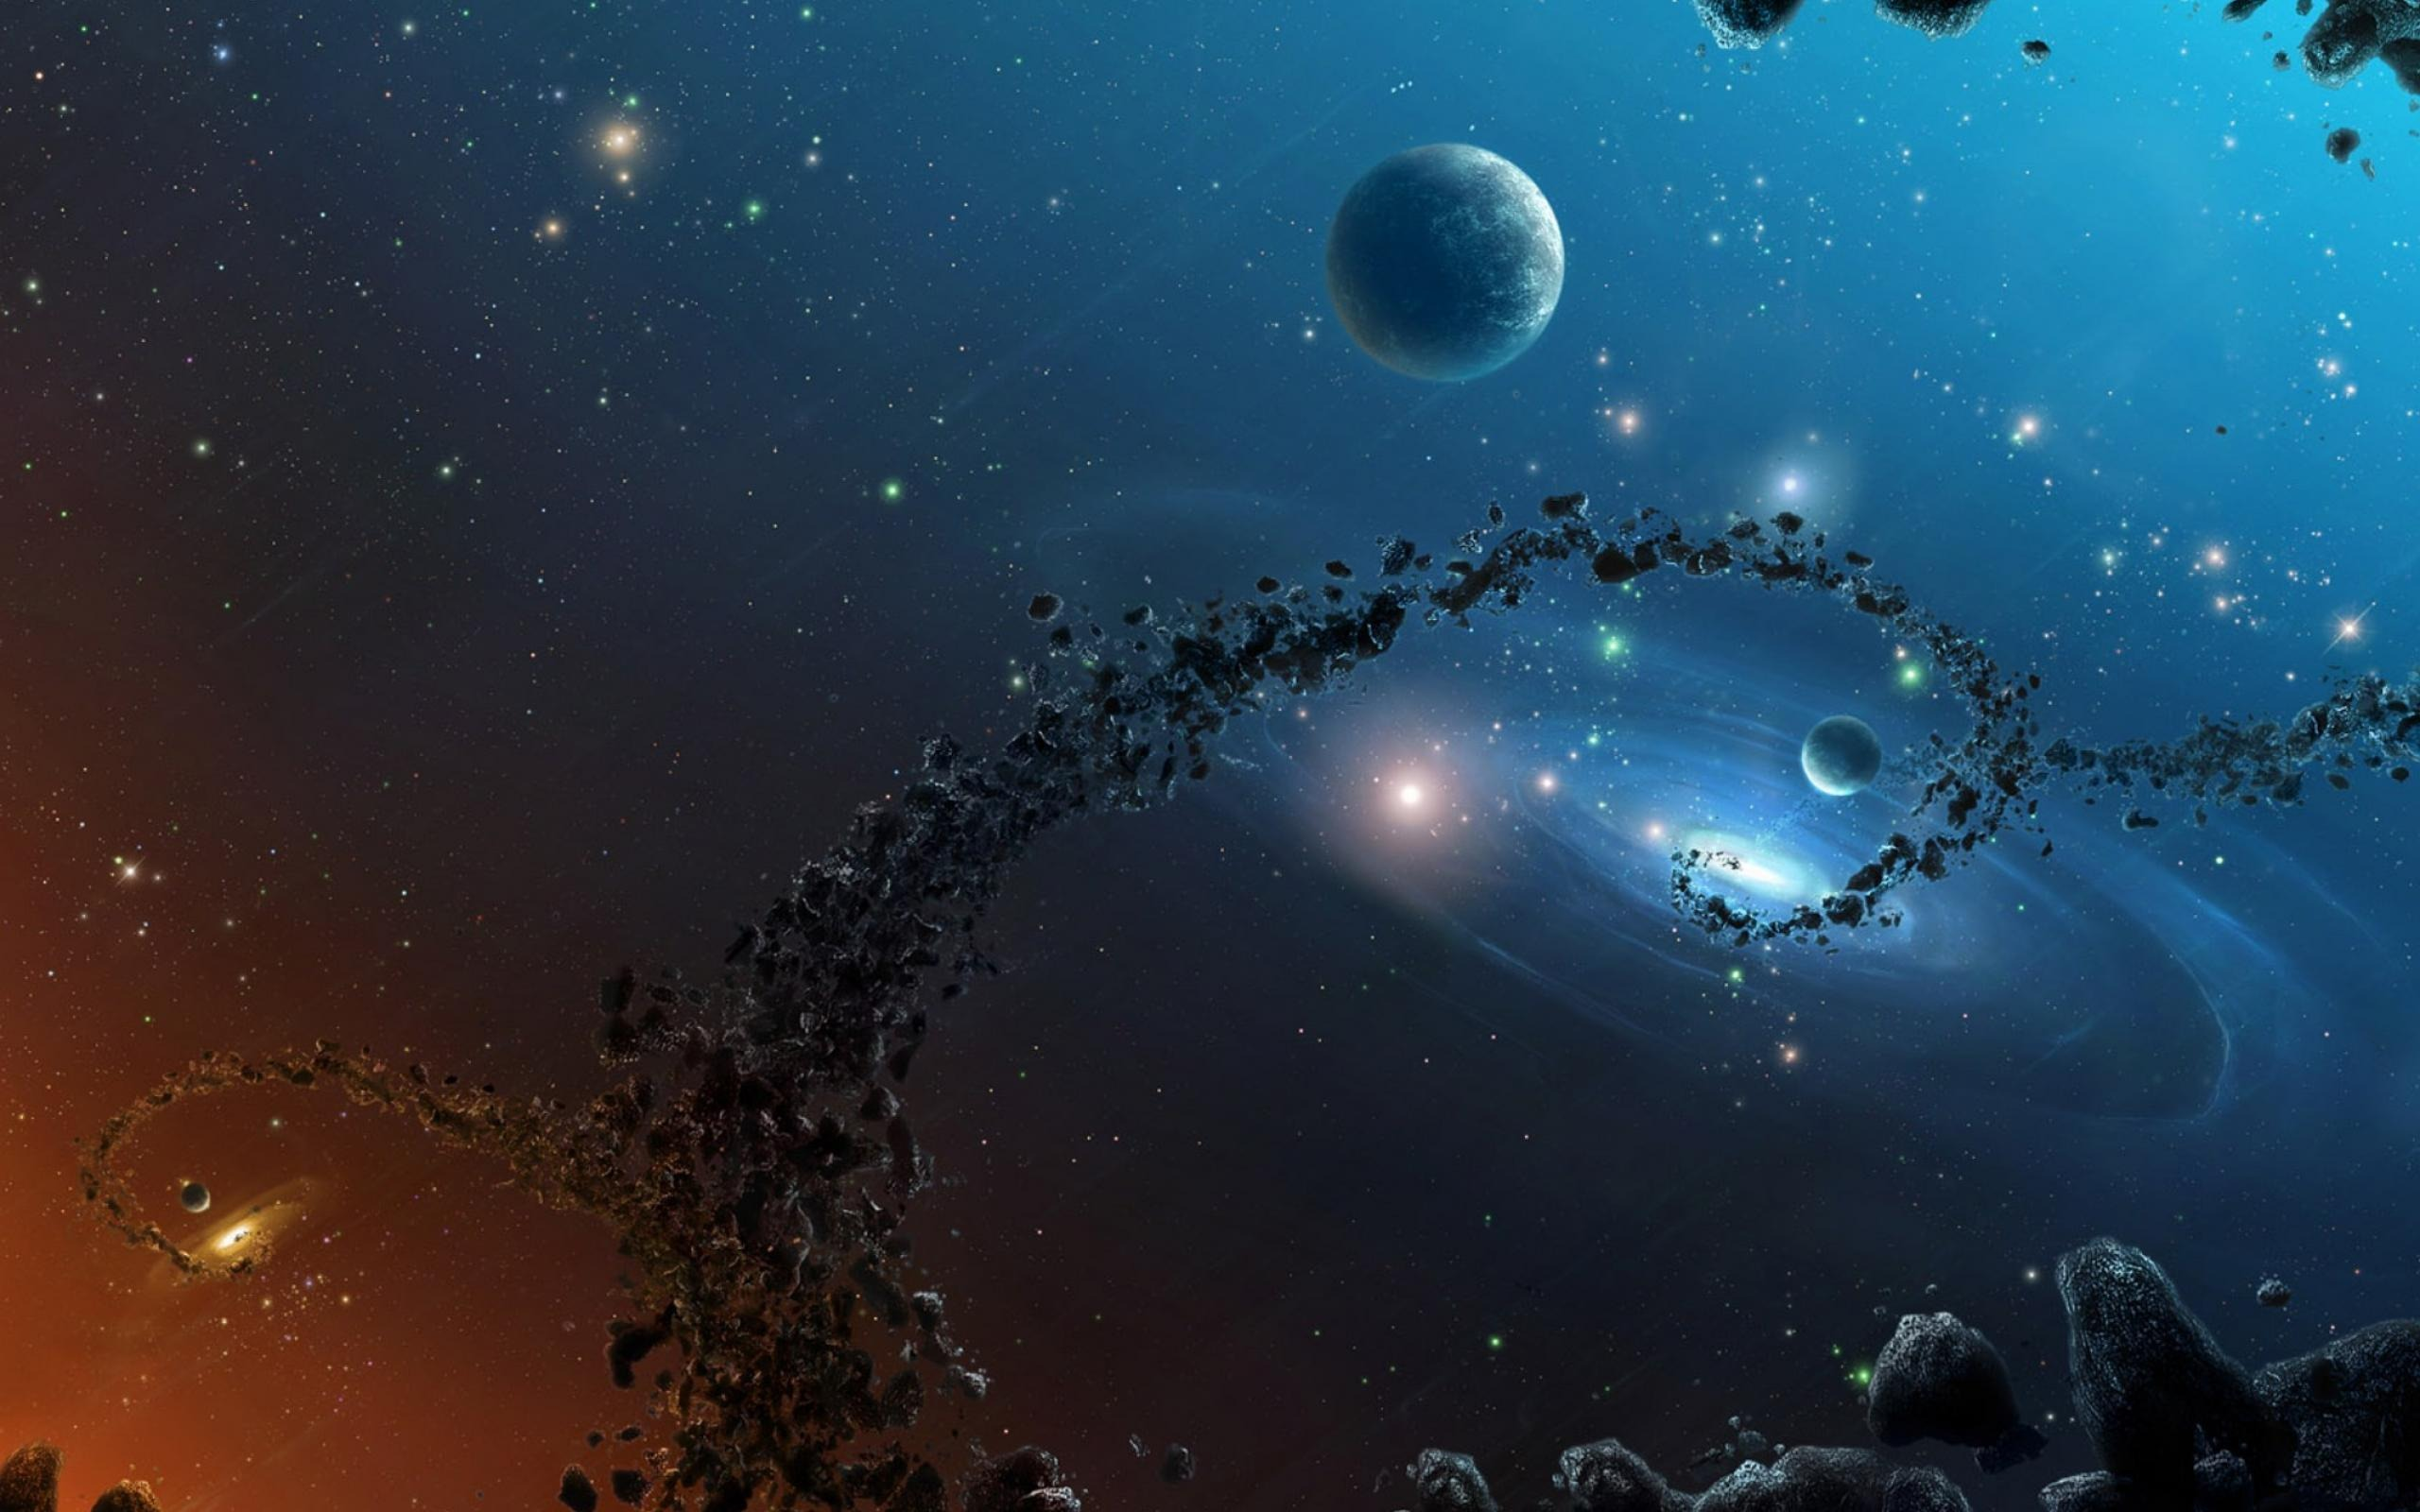 3d Space Hd Space Wallpapers Preview 10wallpaper Com